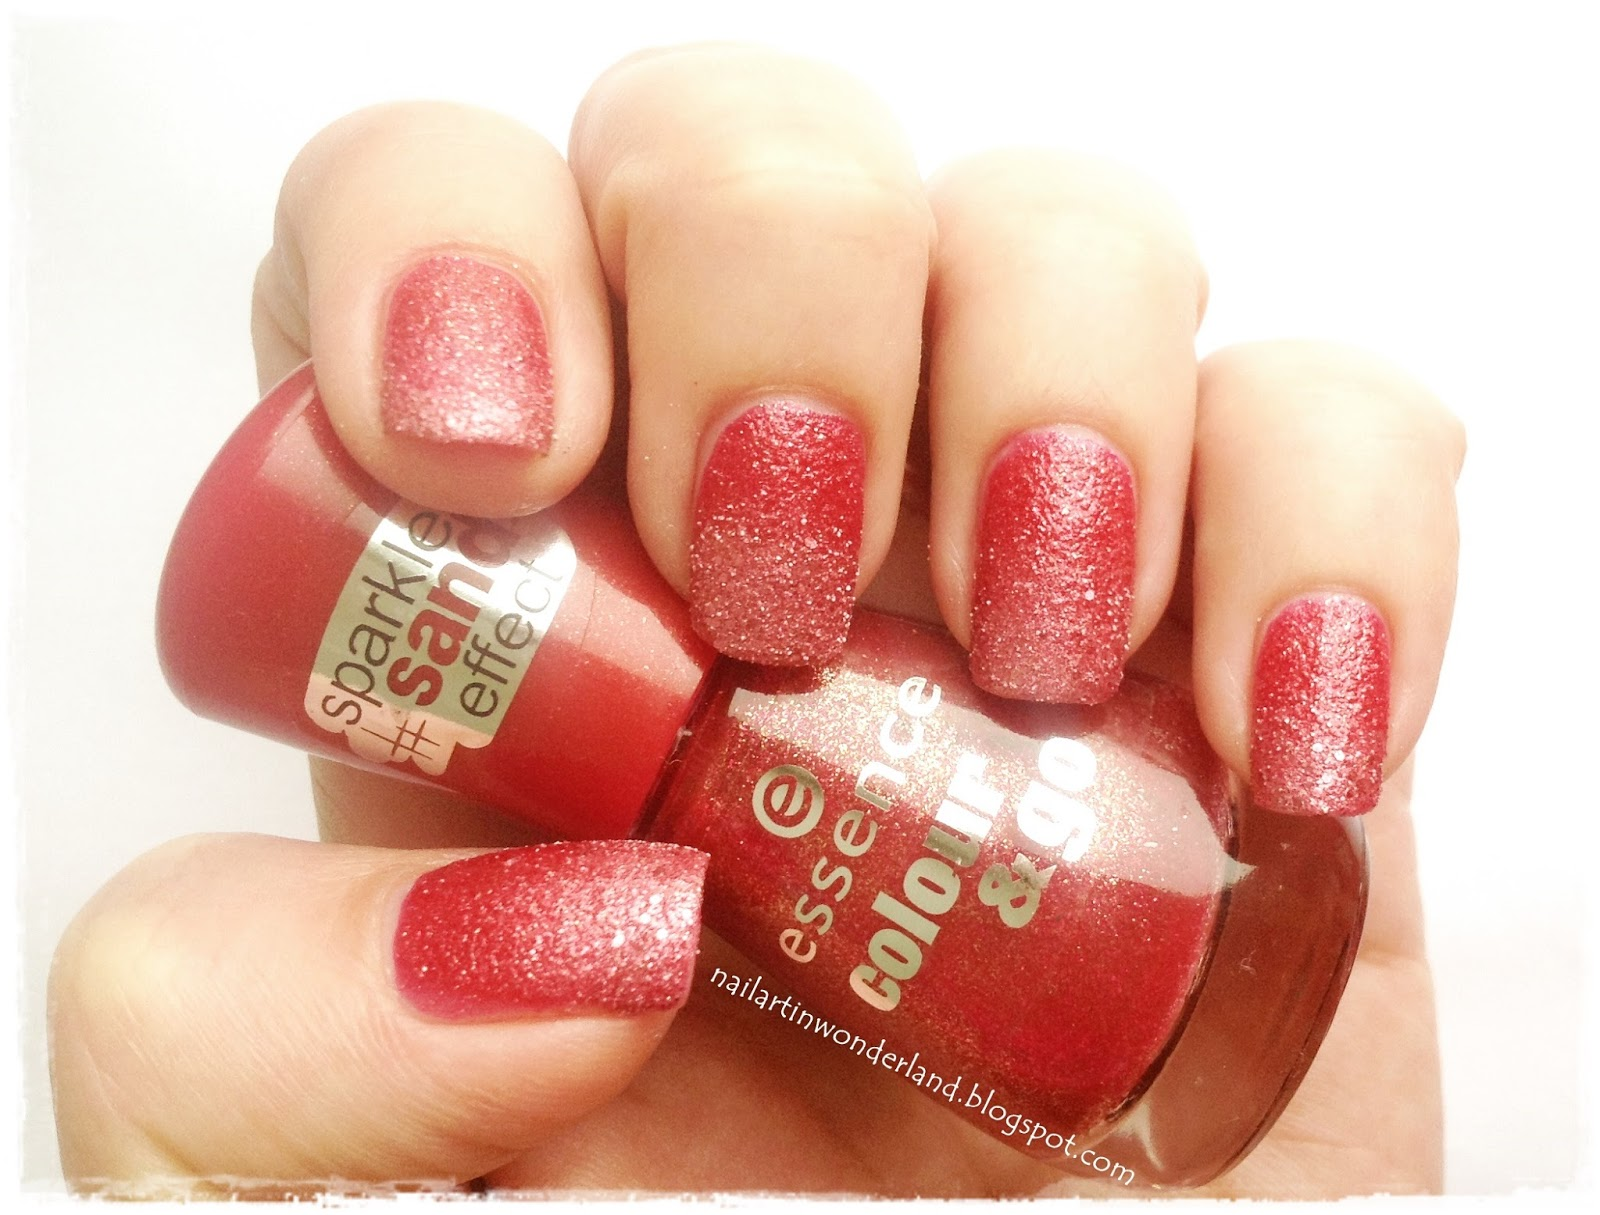 Essence Color & Go Sparkle Sand Effect Nail Polishes: Me & My Lover and Hello Rosy